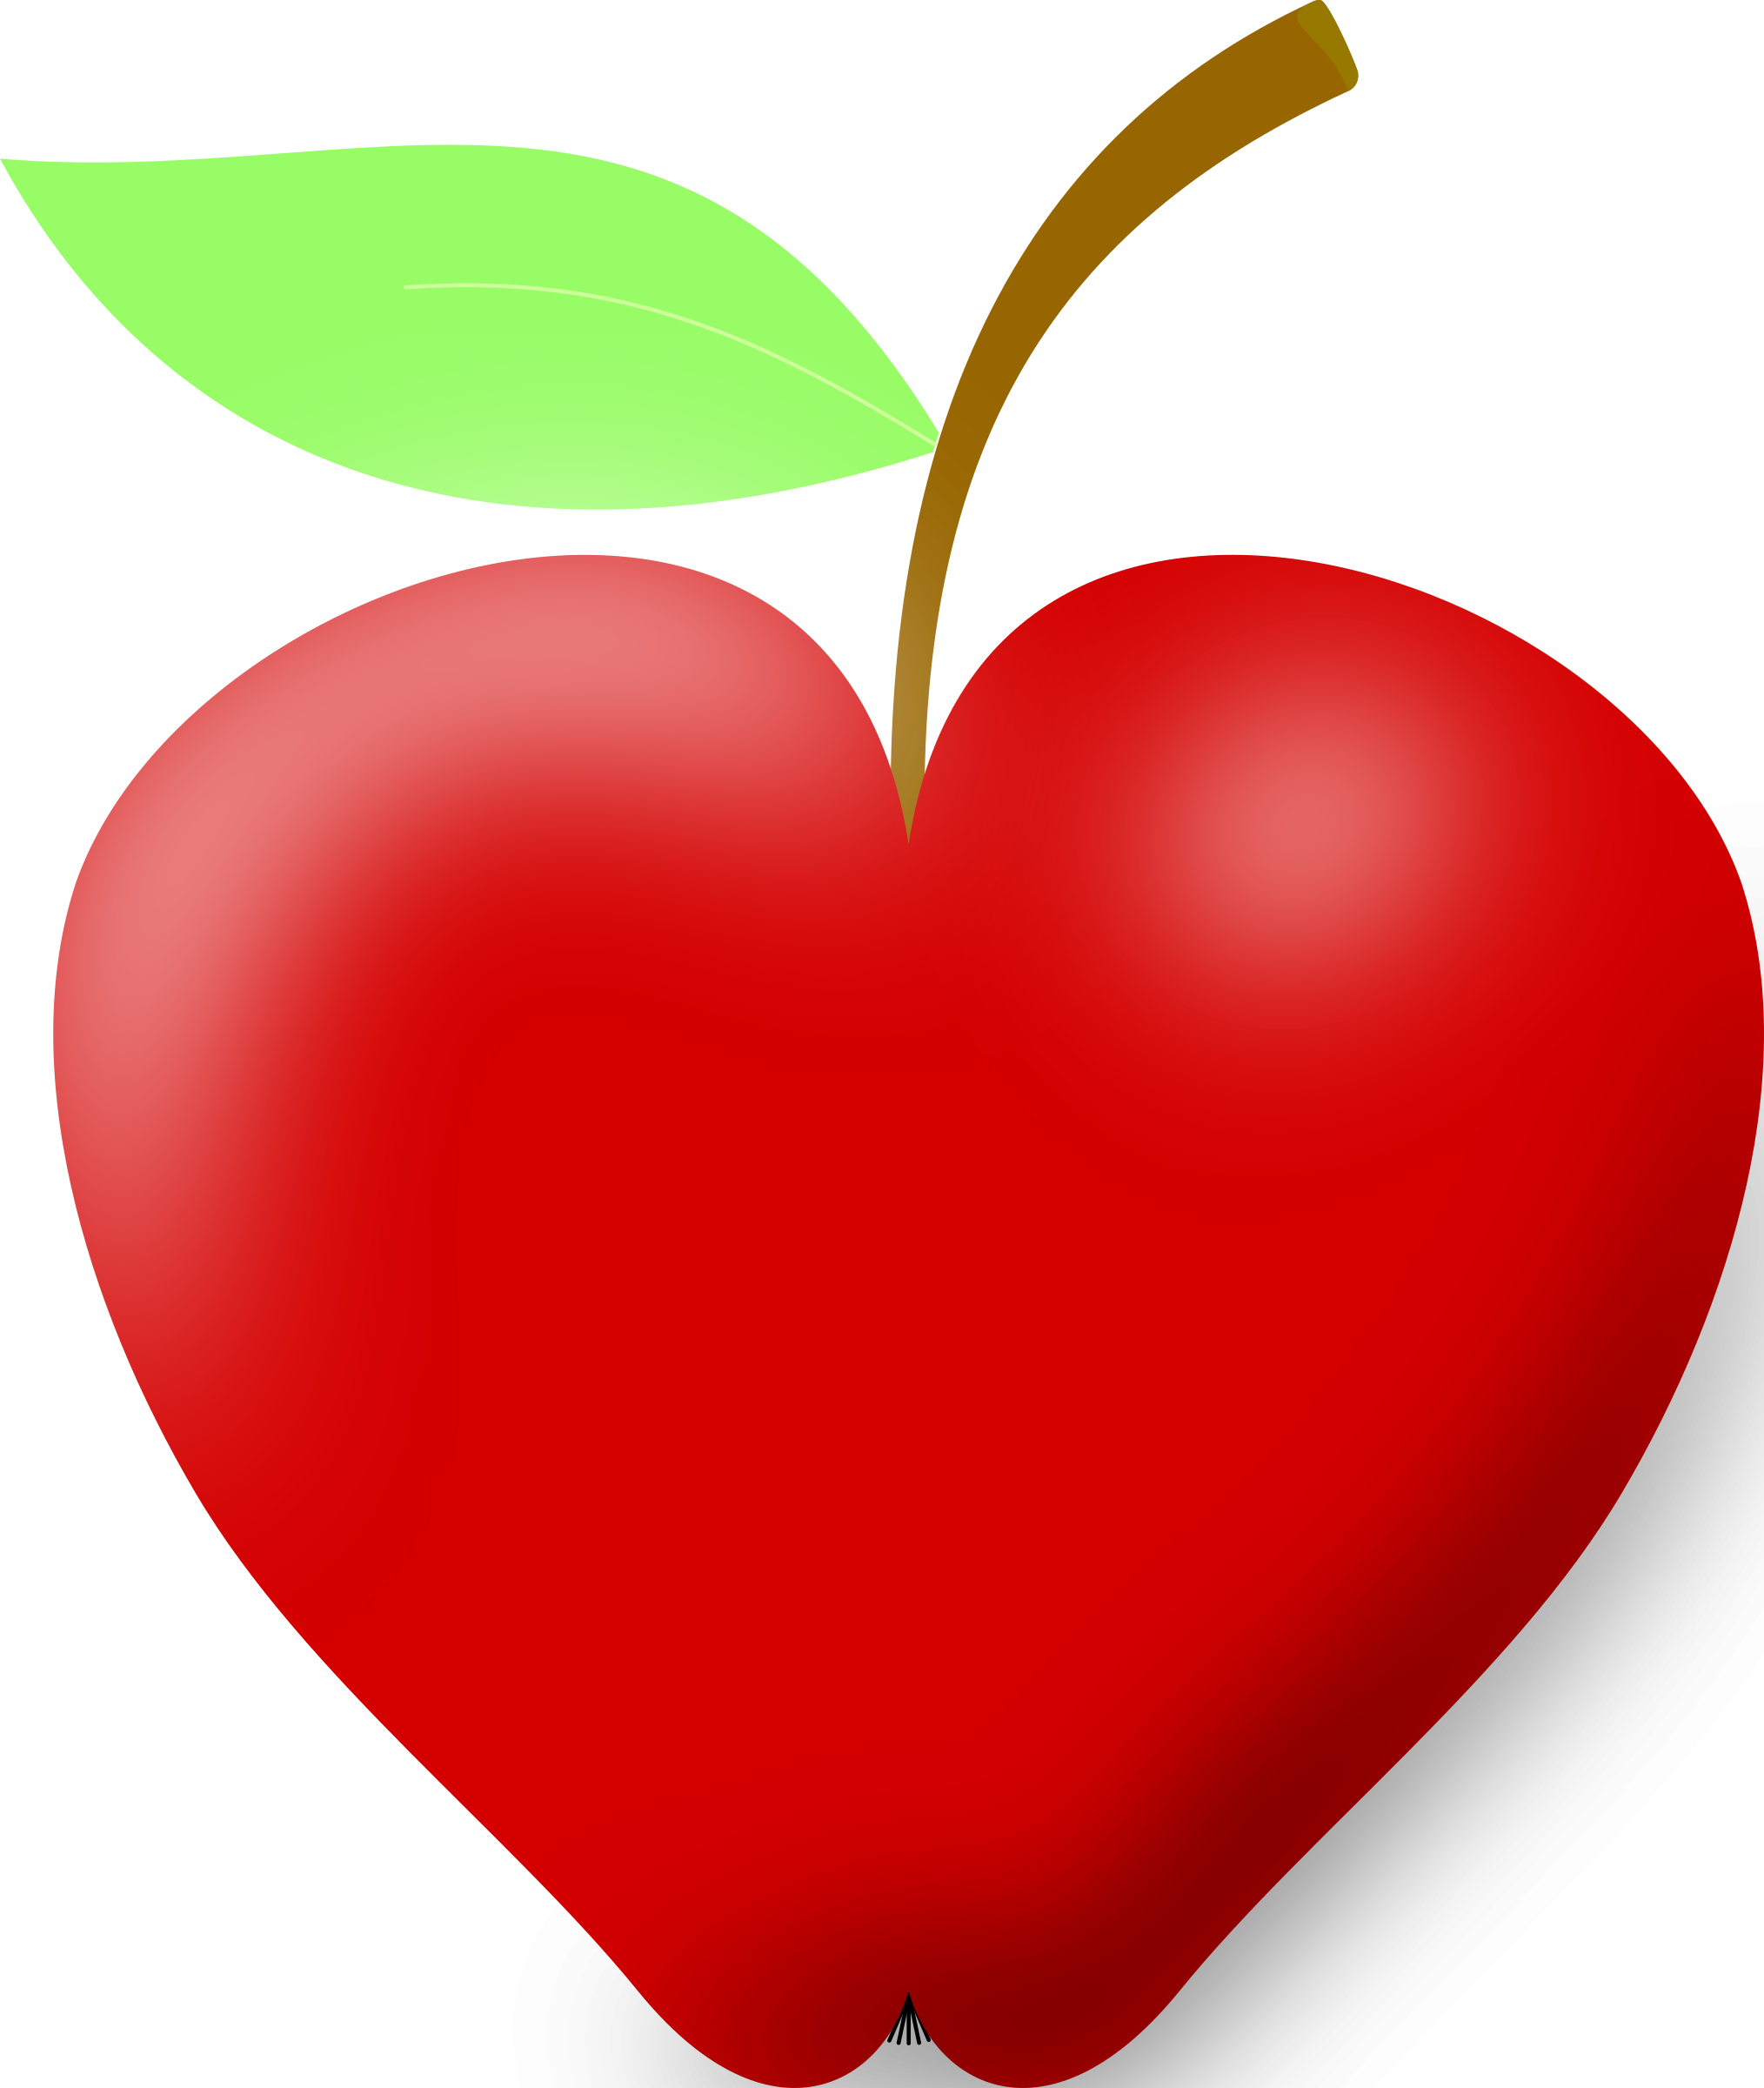 Heart shaped volleyball clipart download 28+ Collection of Heart Shaped Apple Clipart | High quality, free ... download